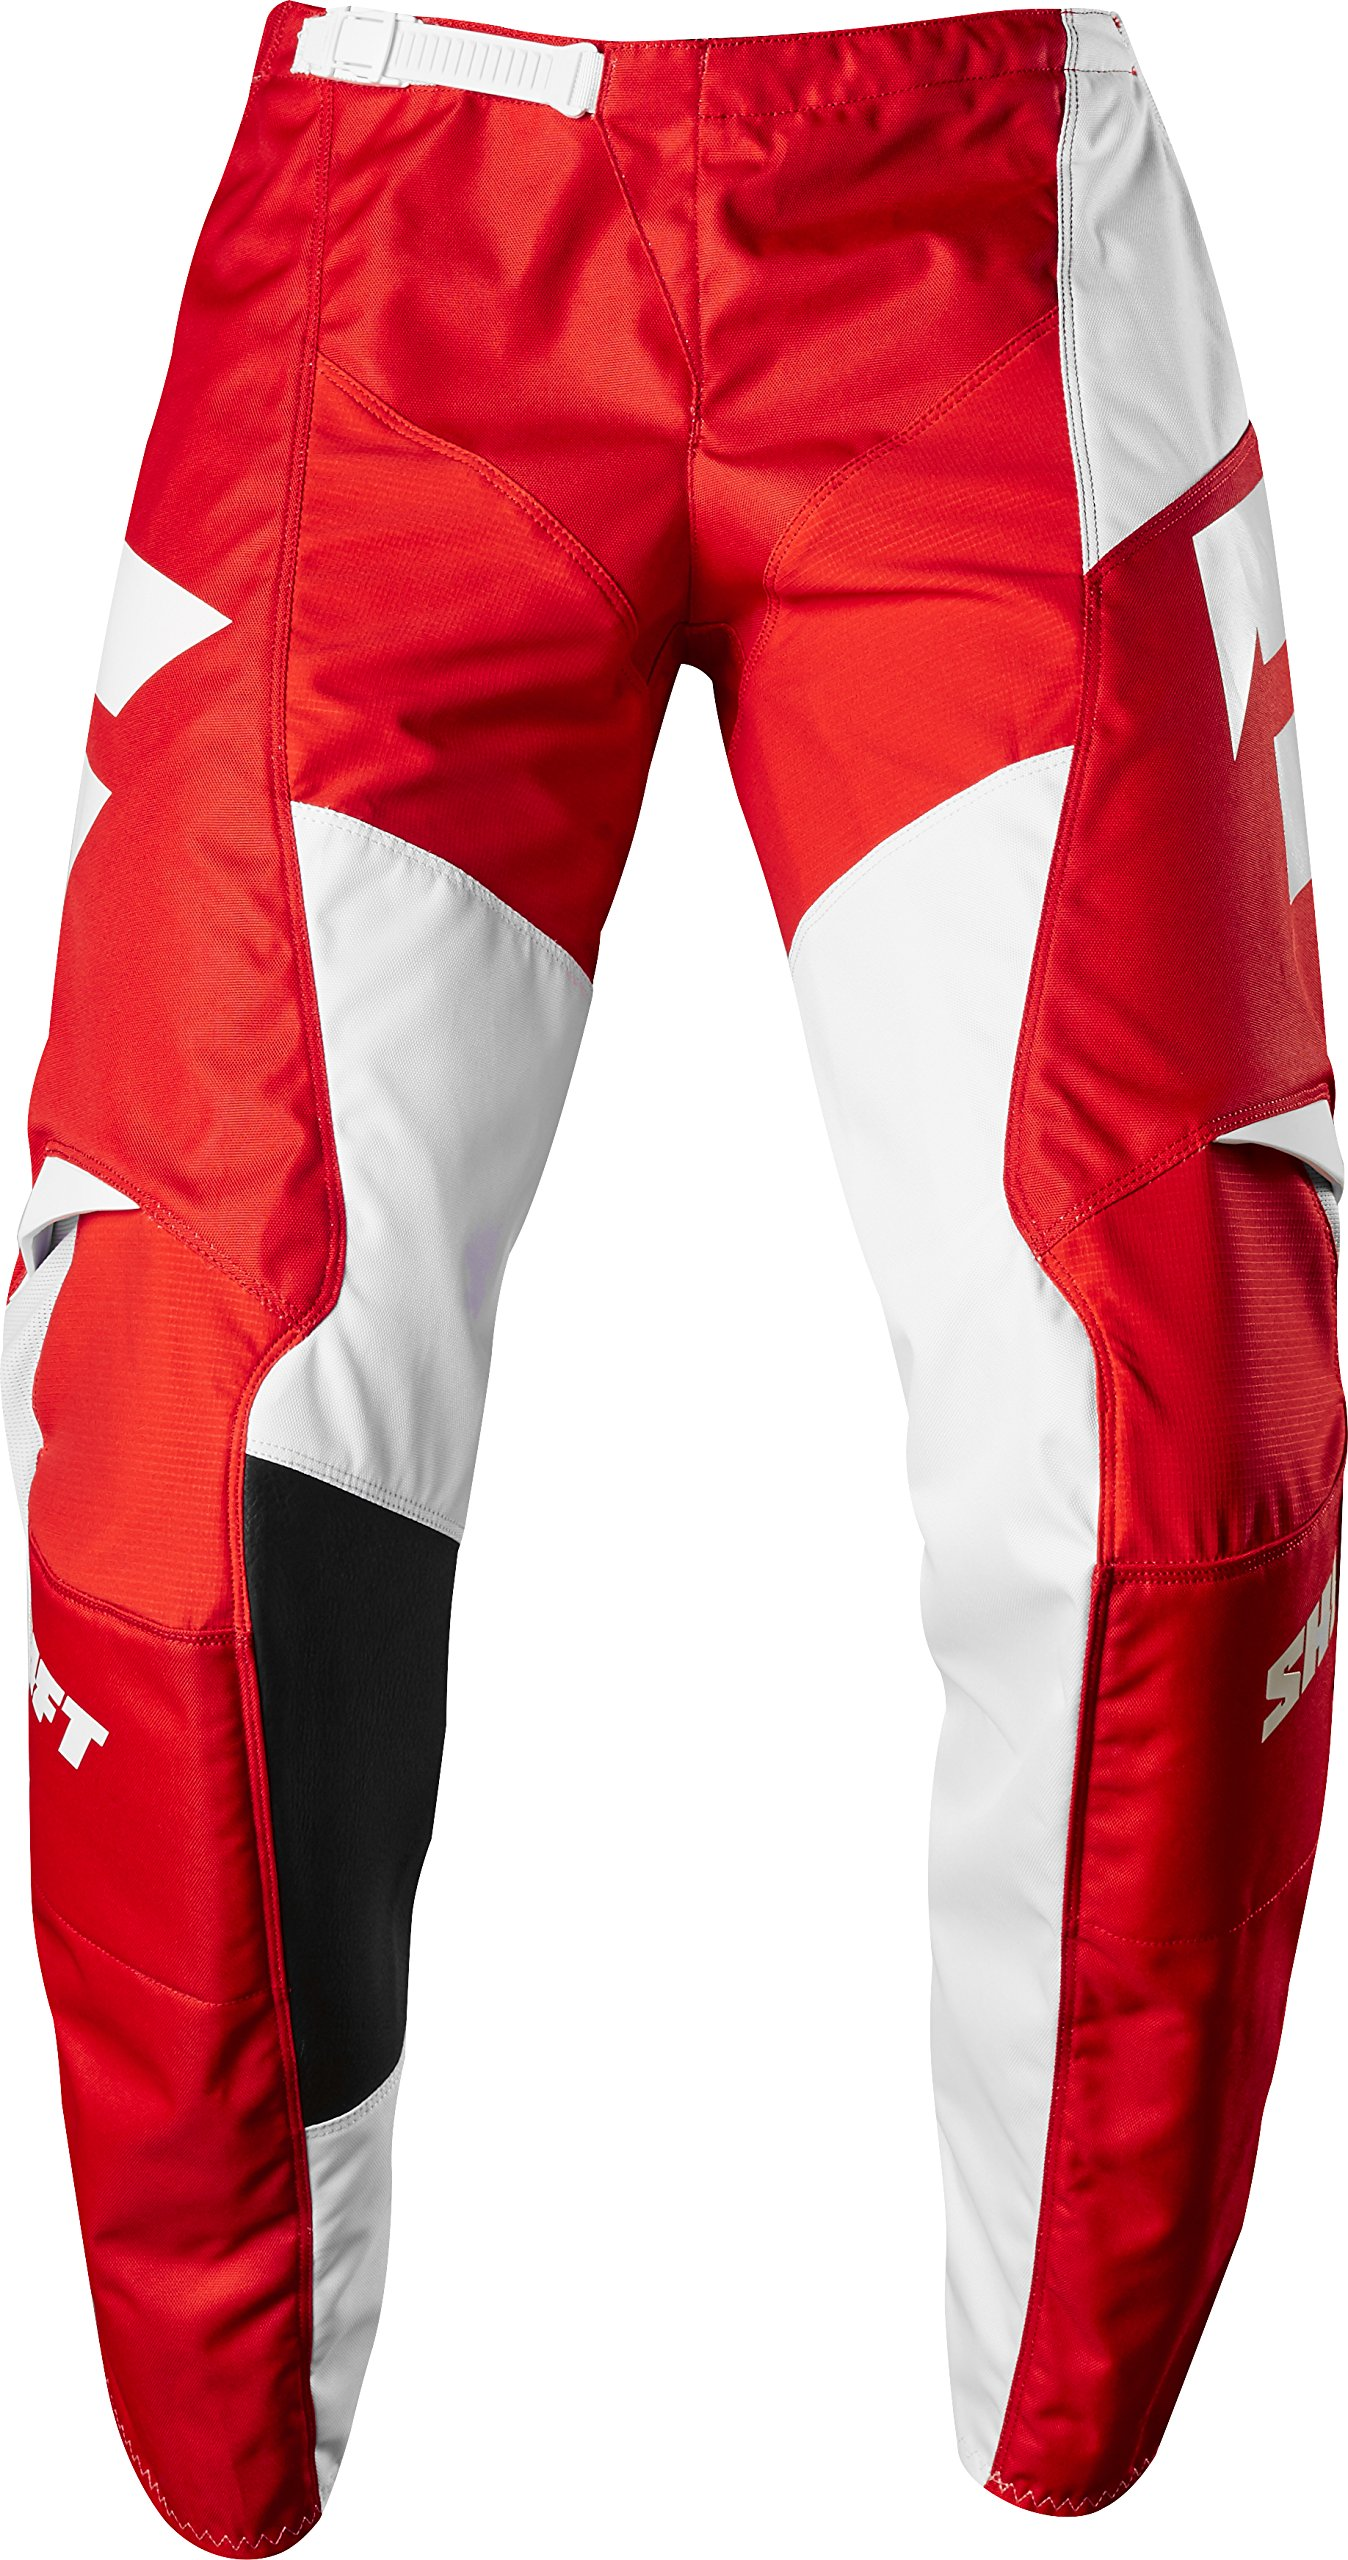 Shift MX - White Label Ninety Seven Red Jersey/ Pant Combo - Size X-LARGE/ 34W